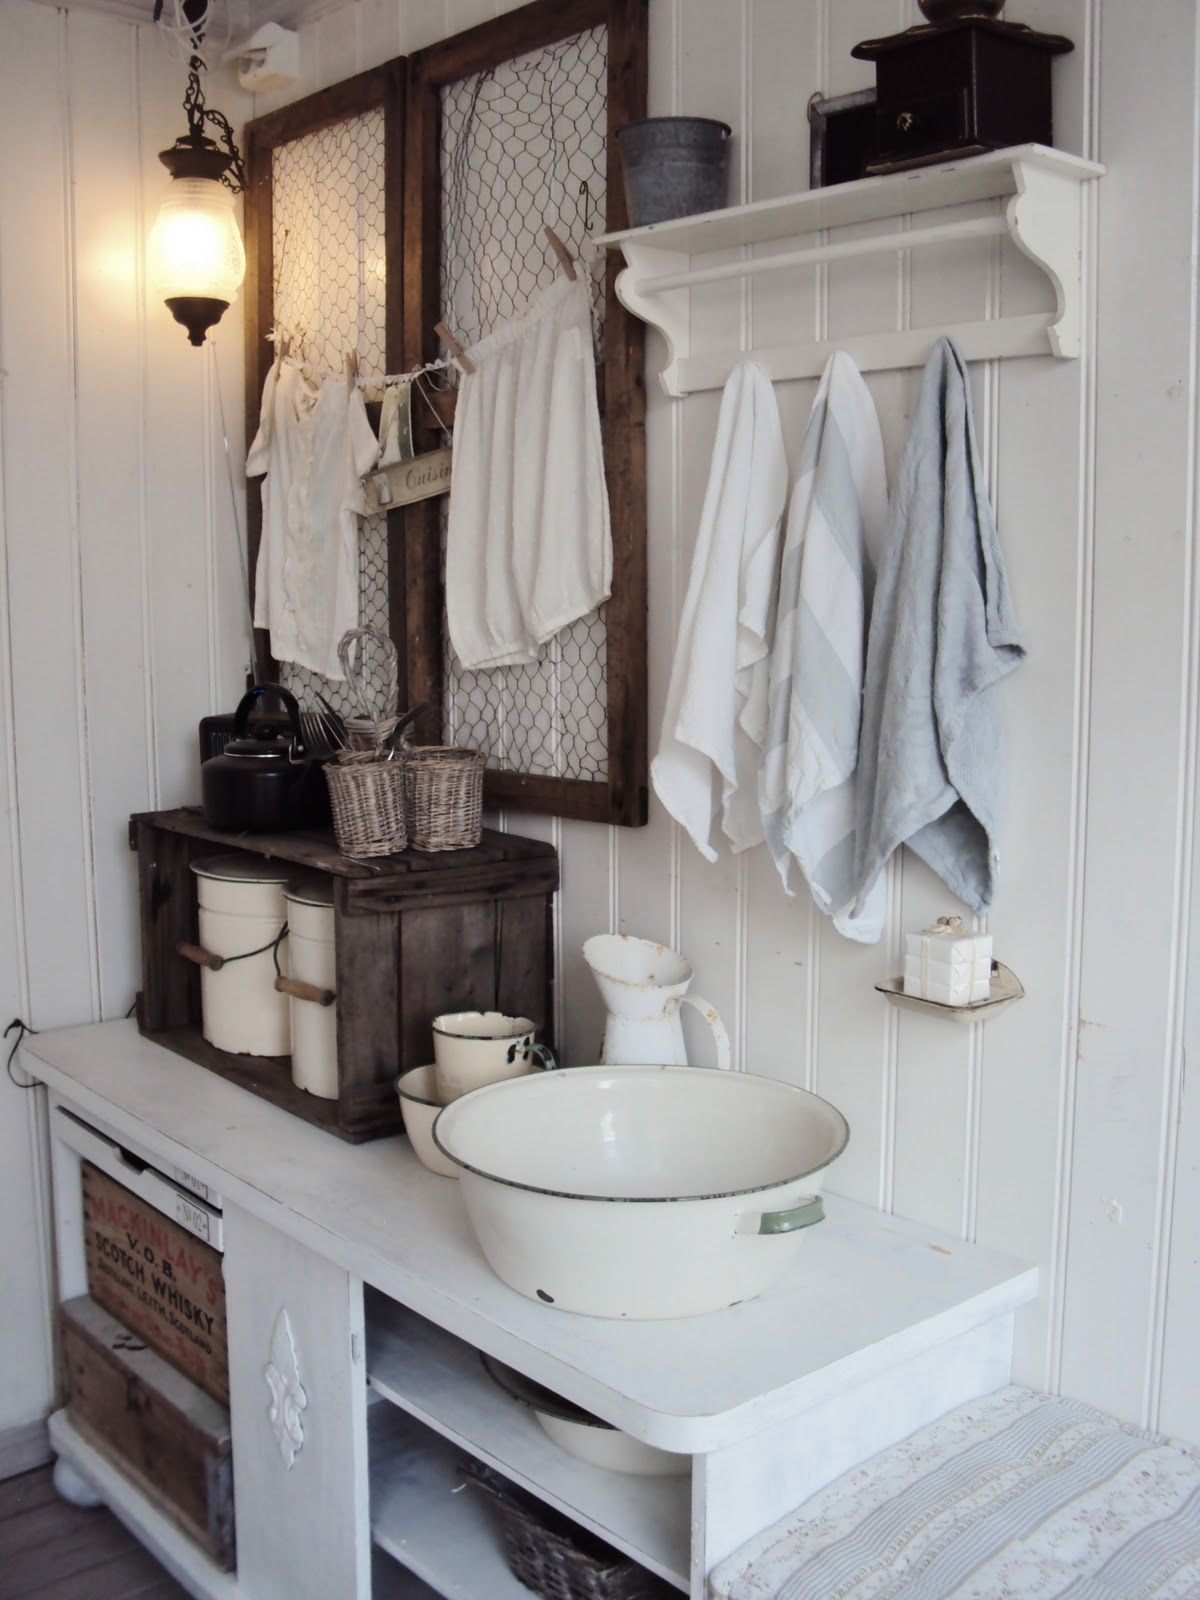 how to add a second sink in a bathroom